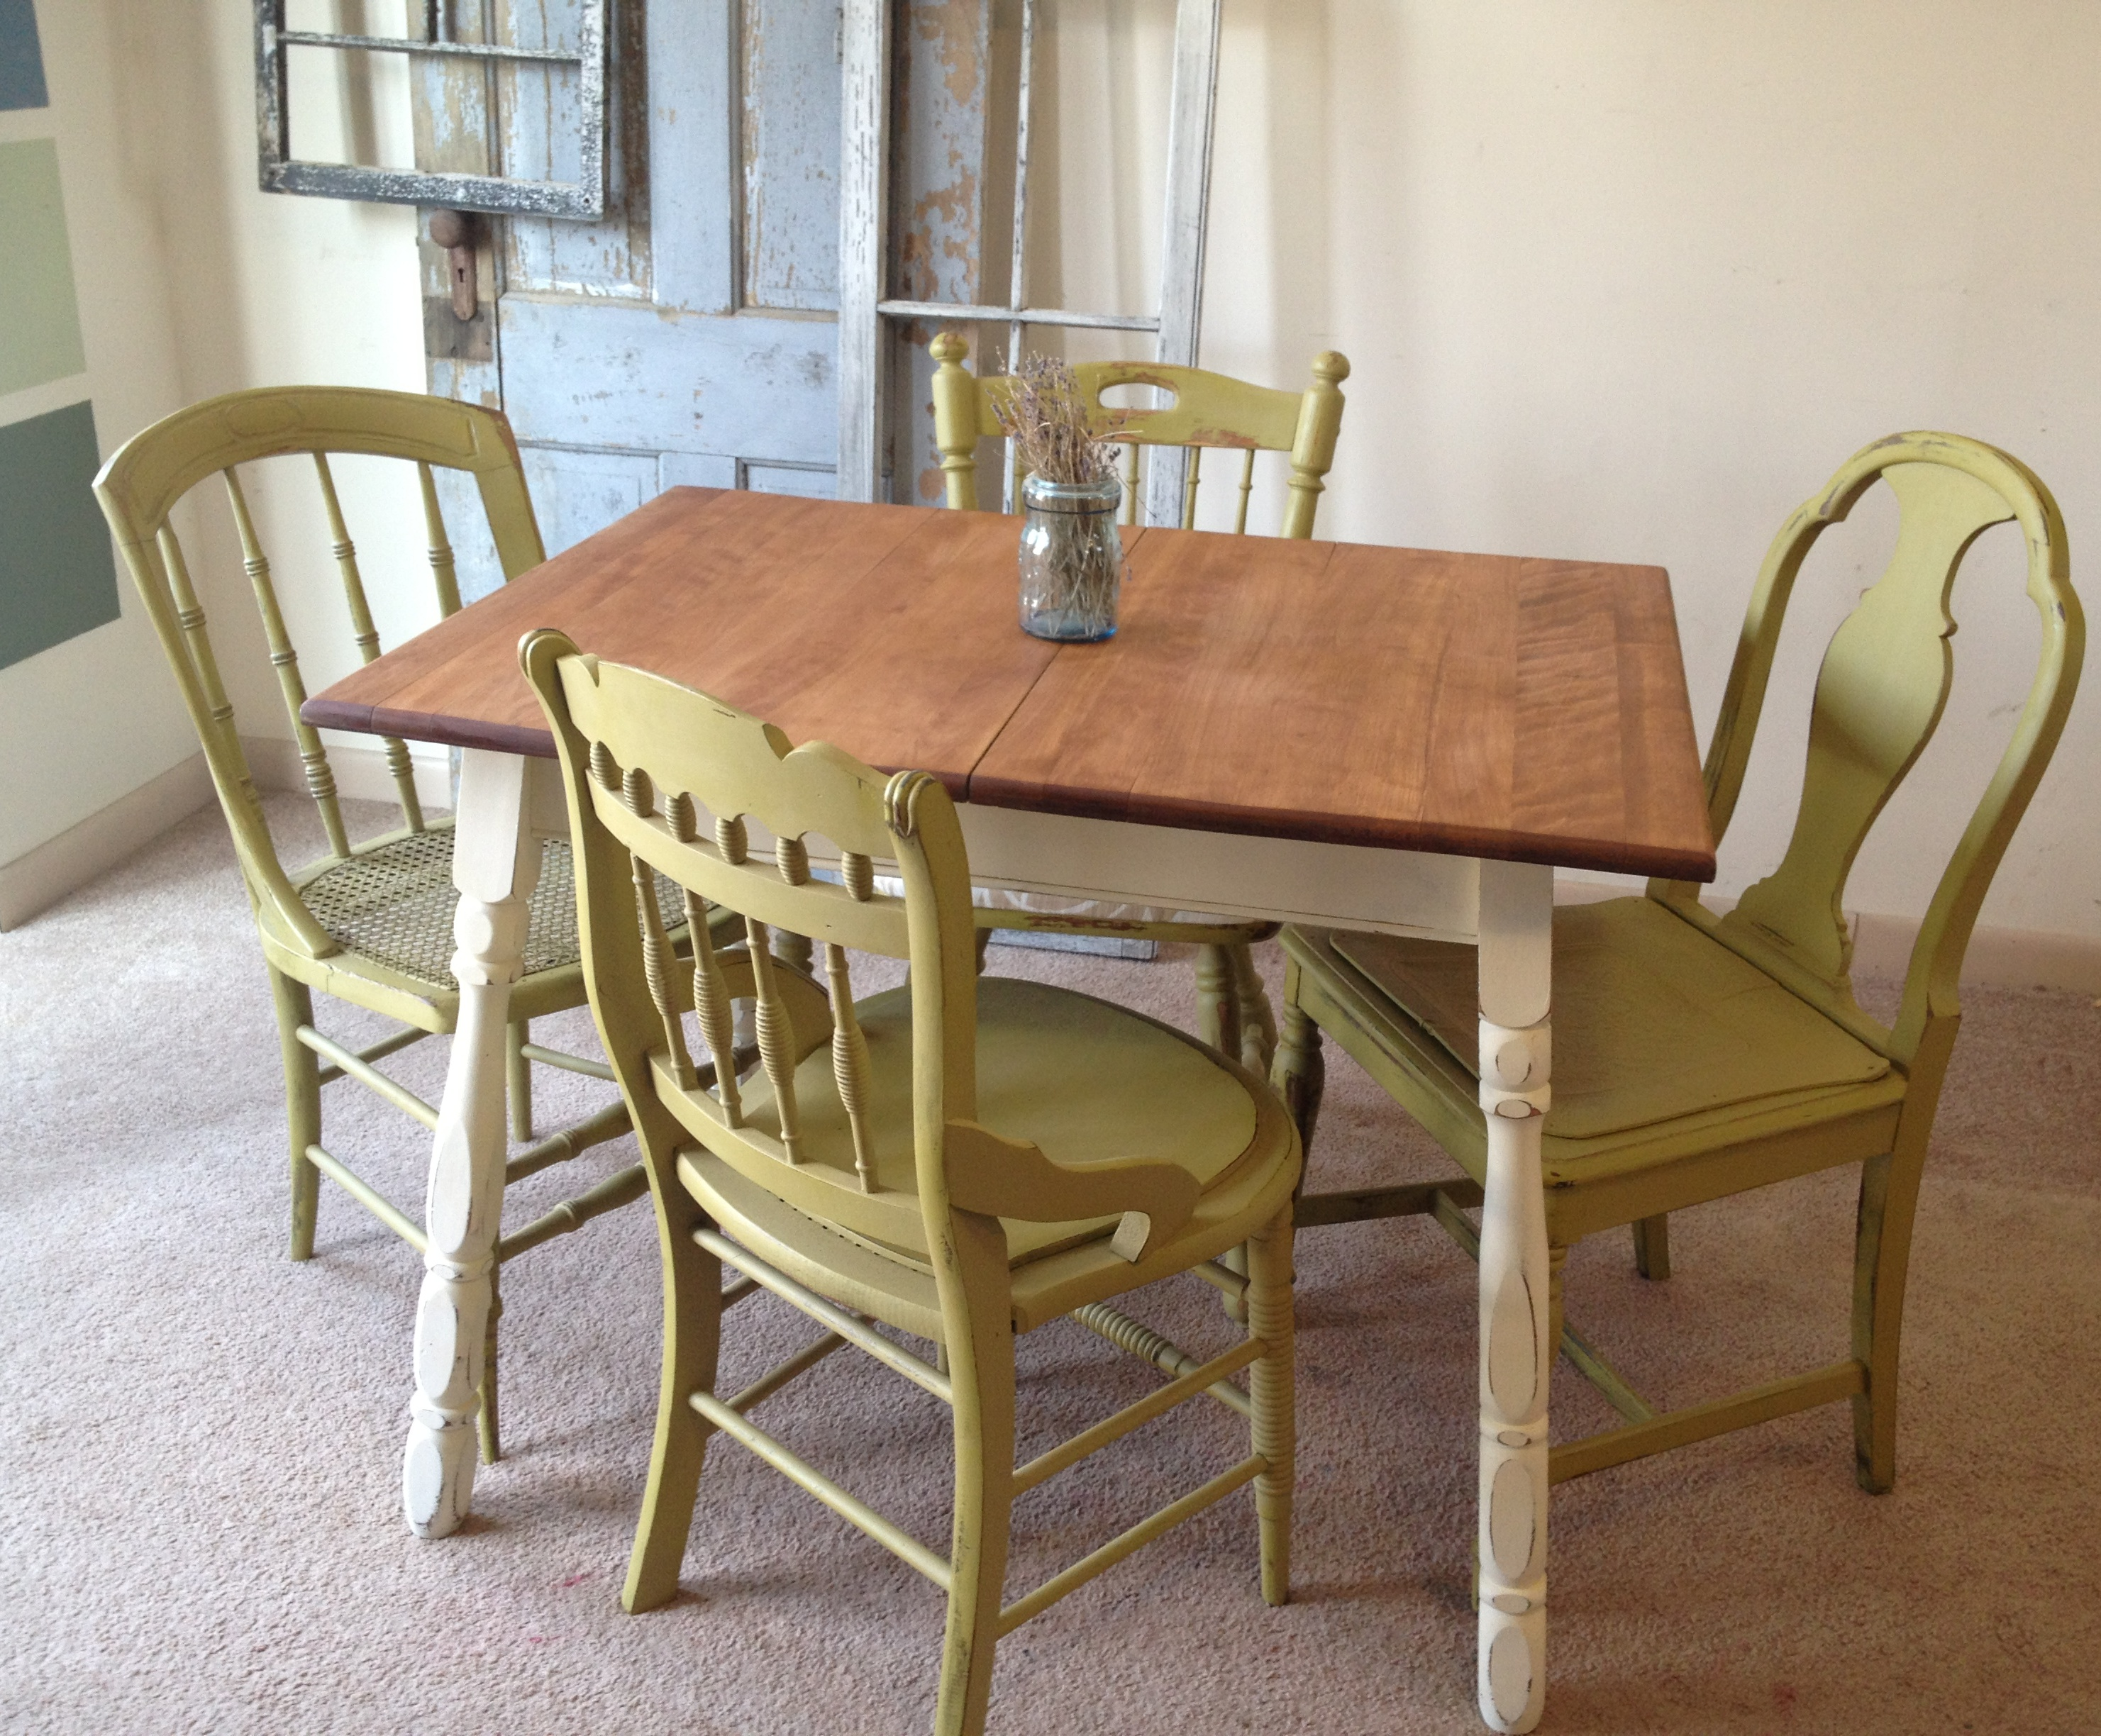 vintage kitchen tables and chairs vintage kitchen tables vintage kitchen tables and chairs photo 1